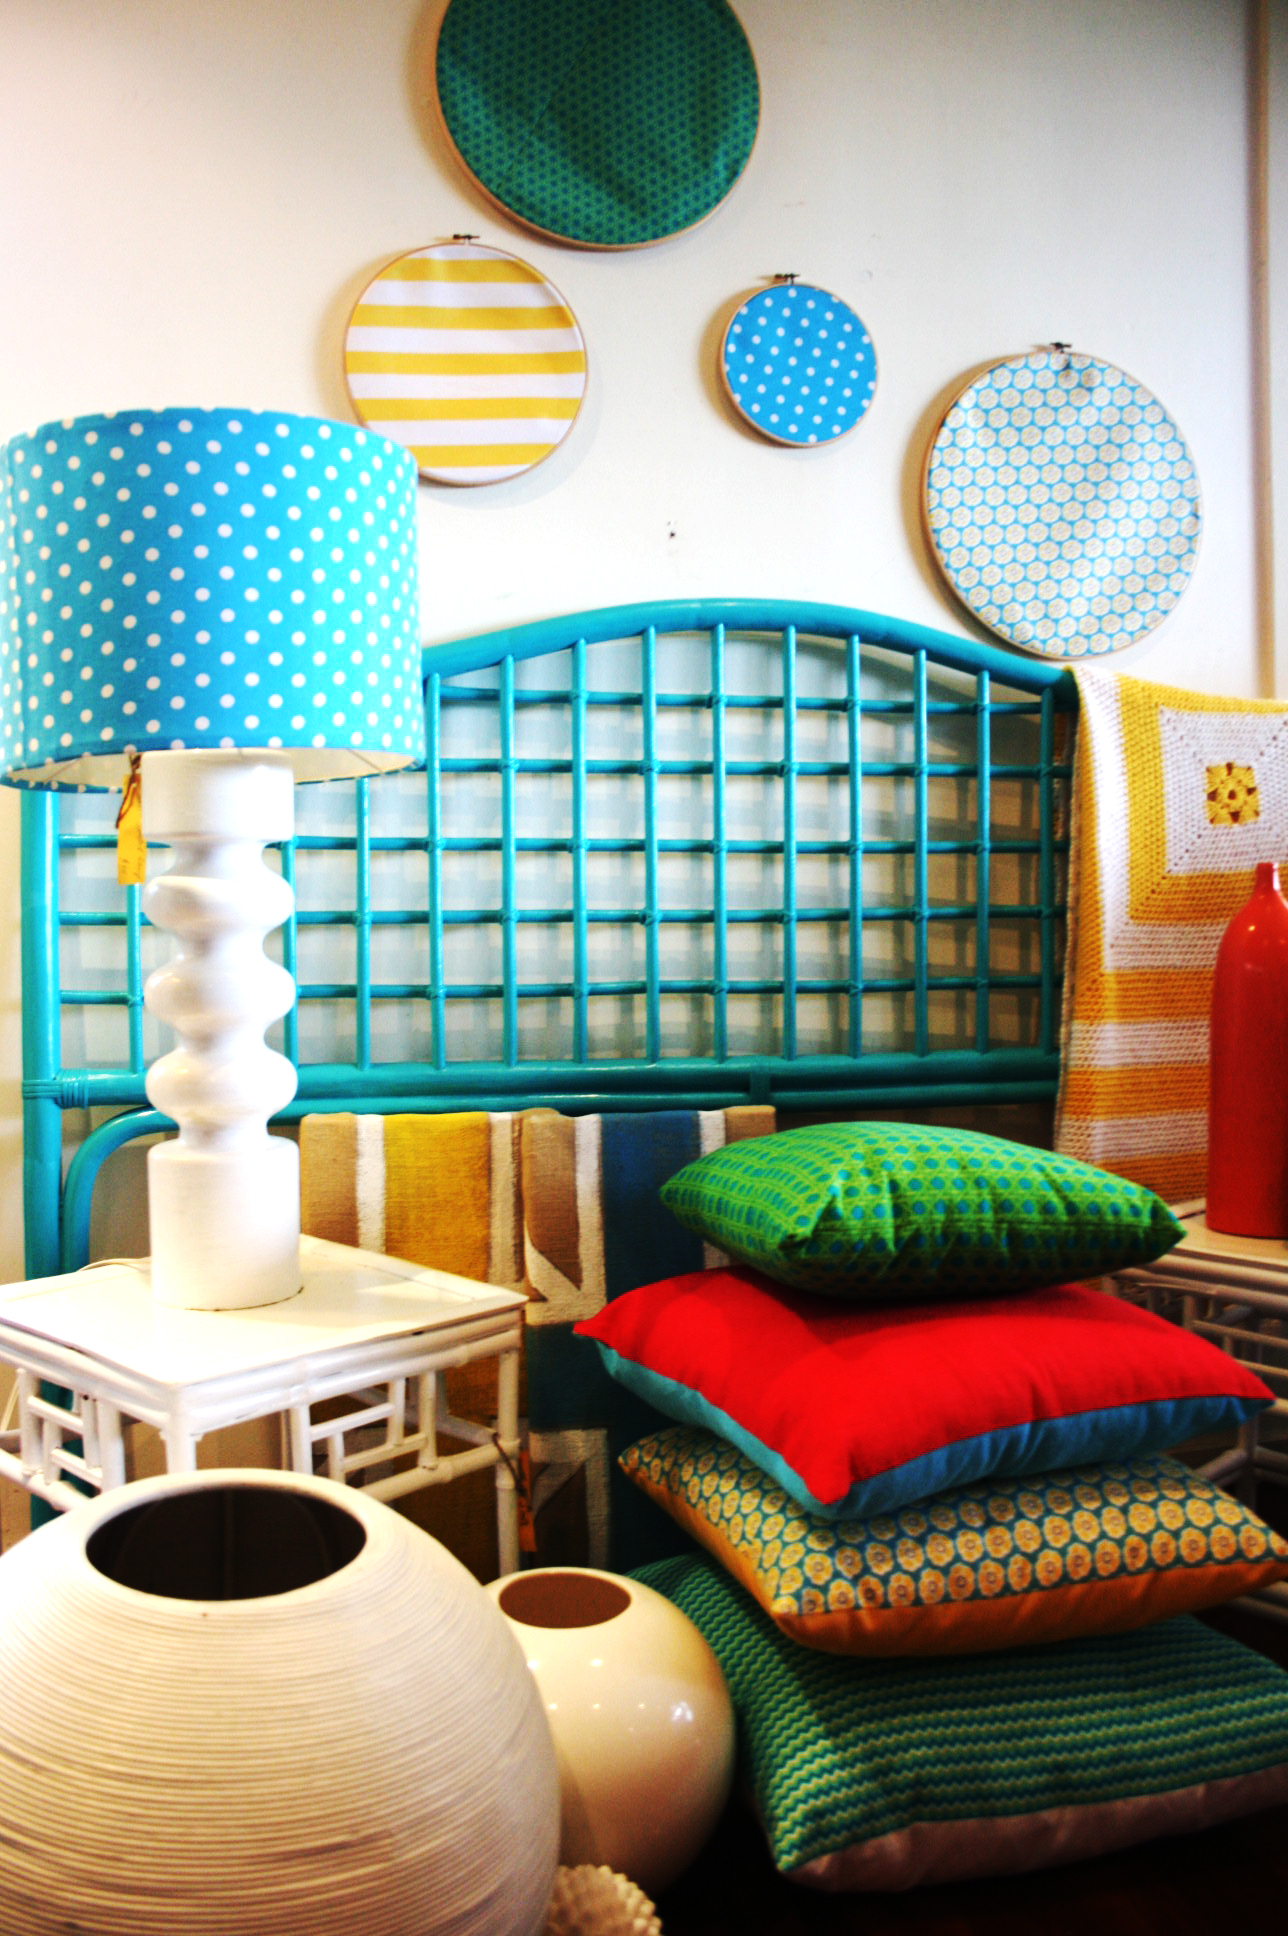 Tiffany and co bedhead retro decor the vintage valet blog - Retro stuhle gunstig ...